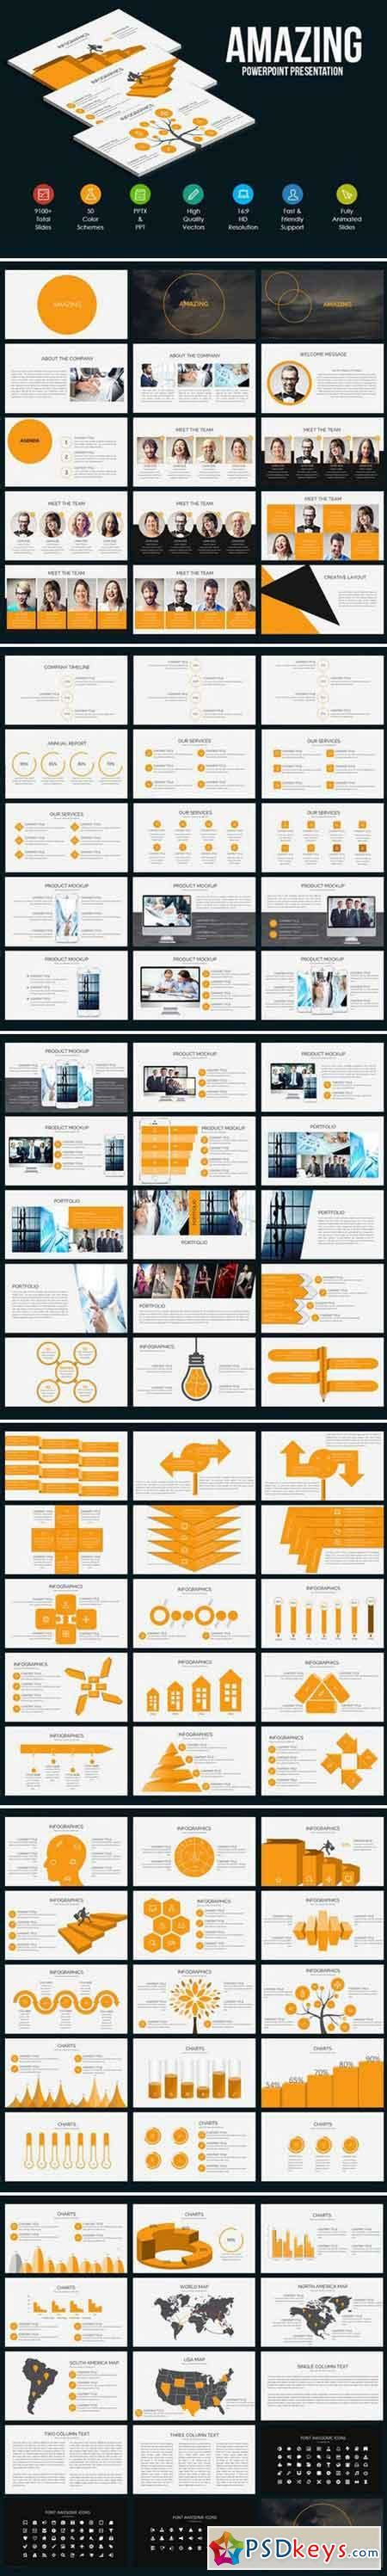 amazing powerpoint template 800433 187 free download